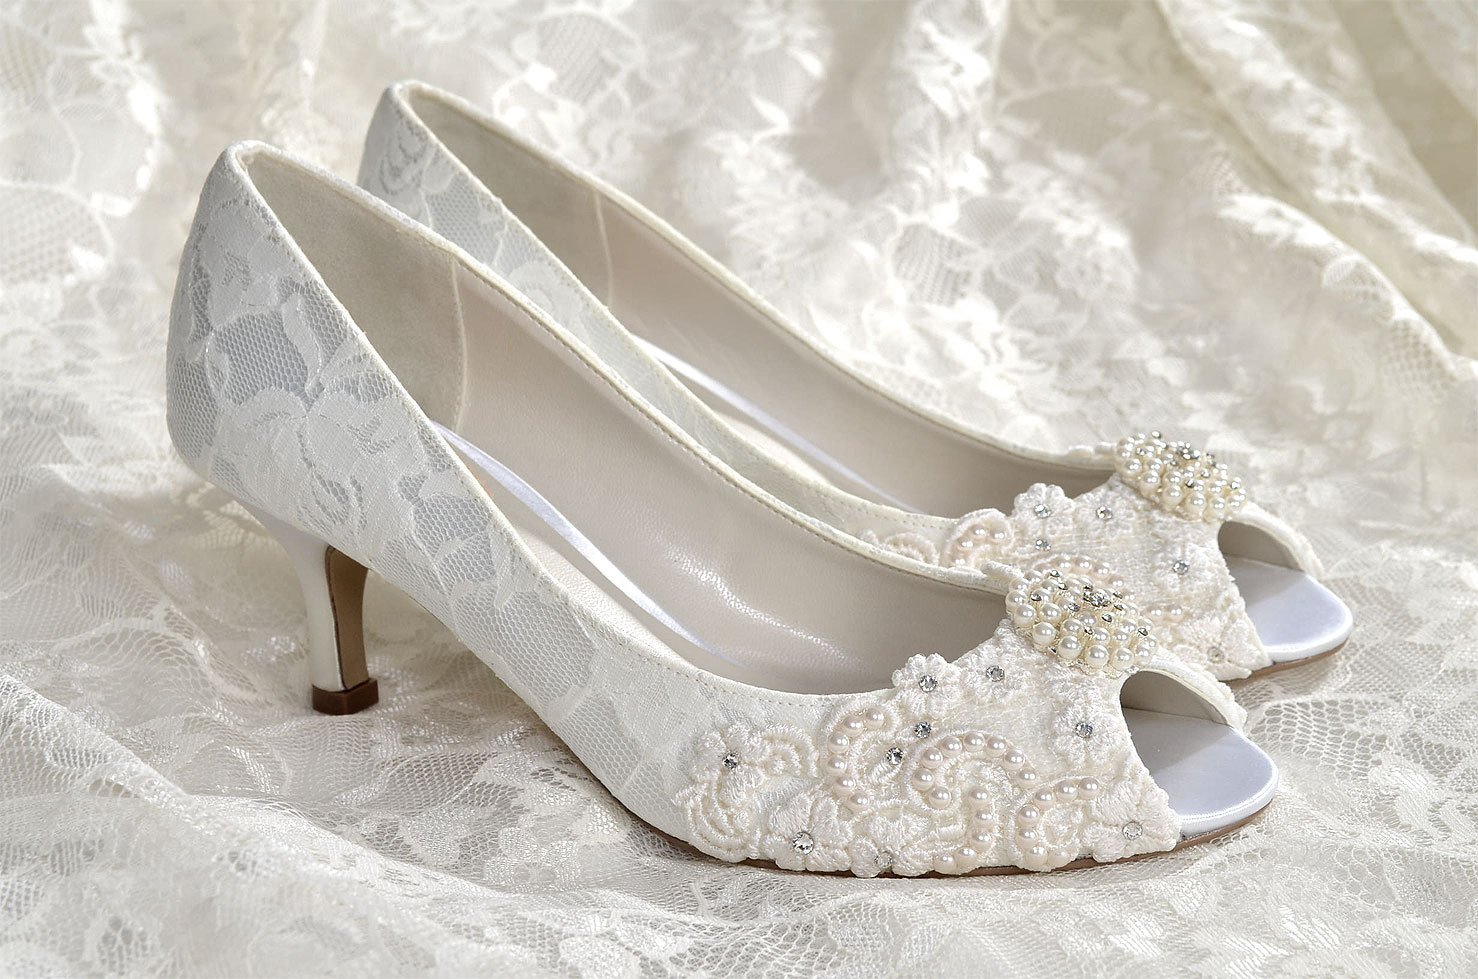 Vintage Wedding Shoes for Bride - Strange History Before Buying 6e86a745e6a2